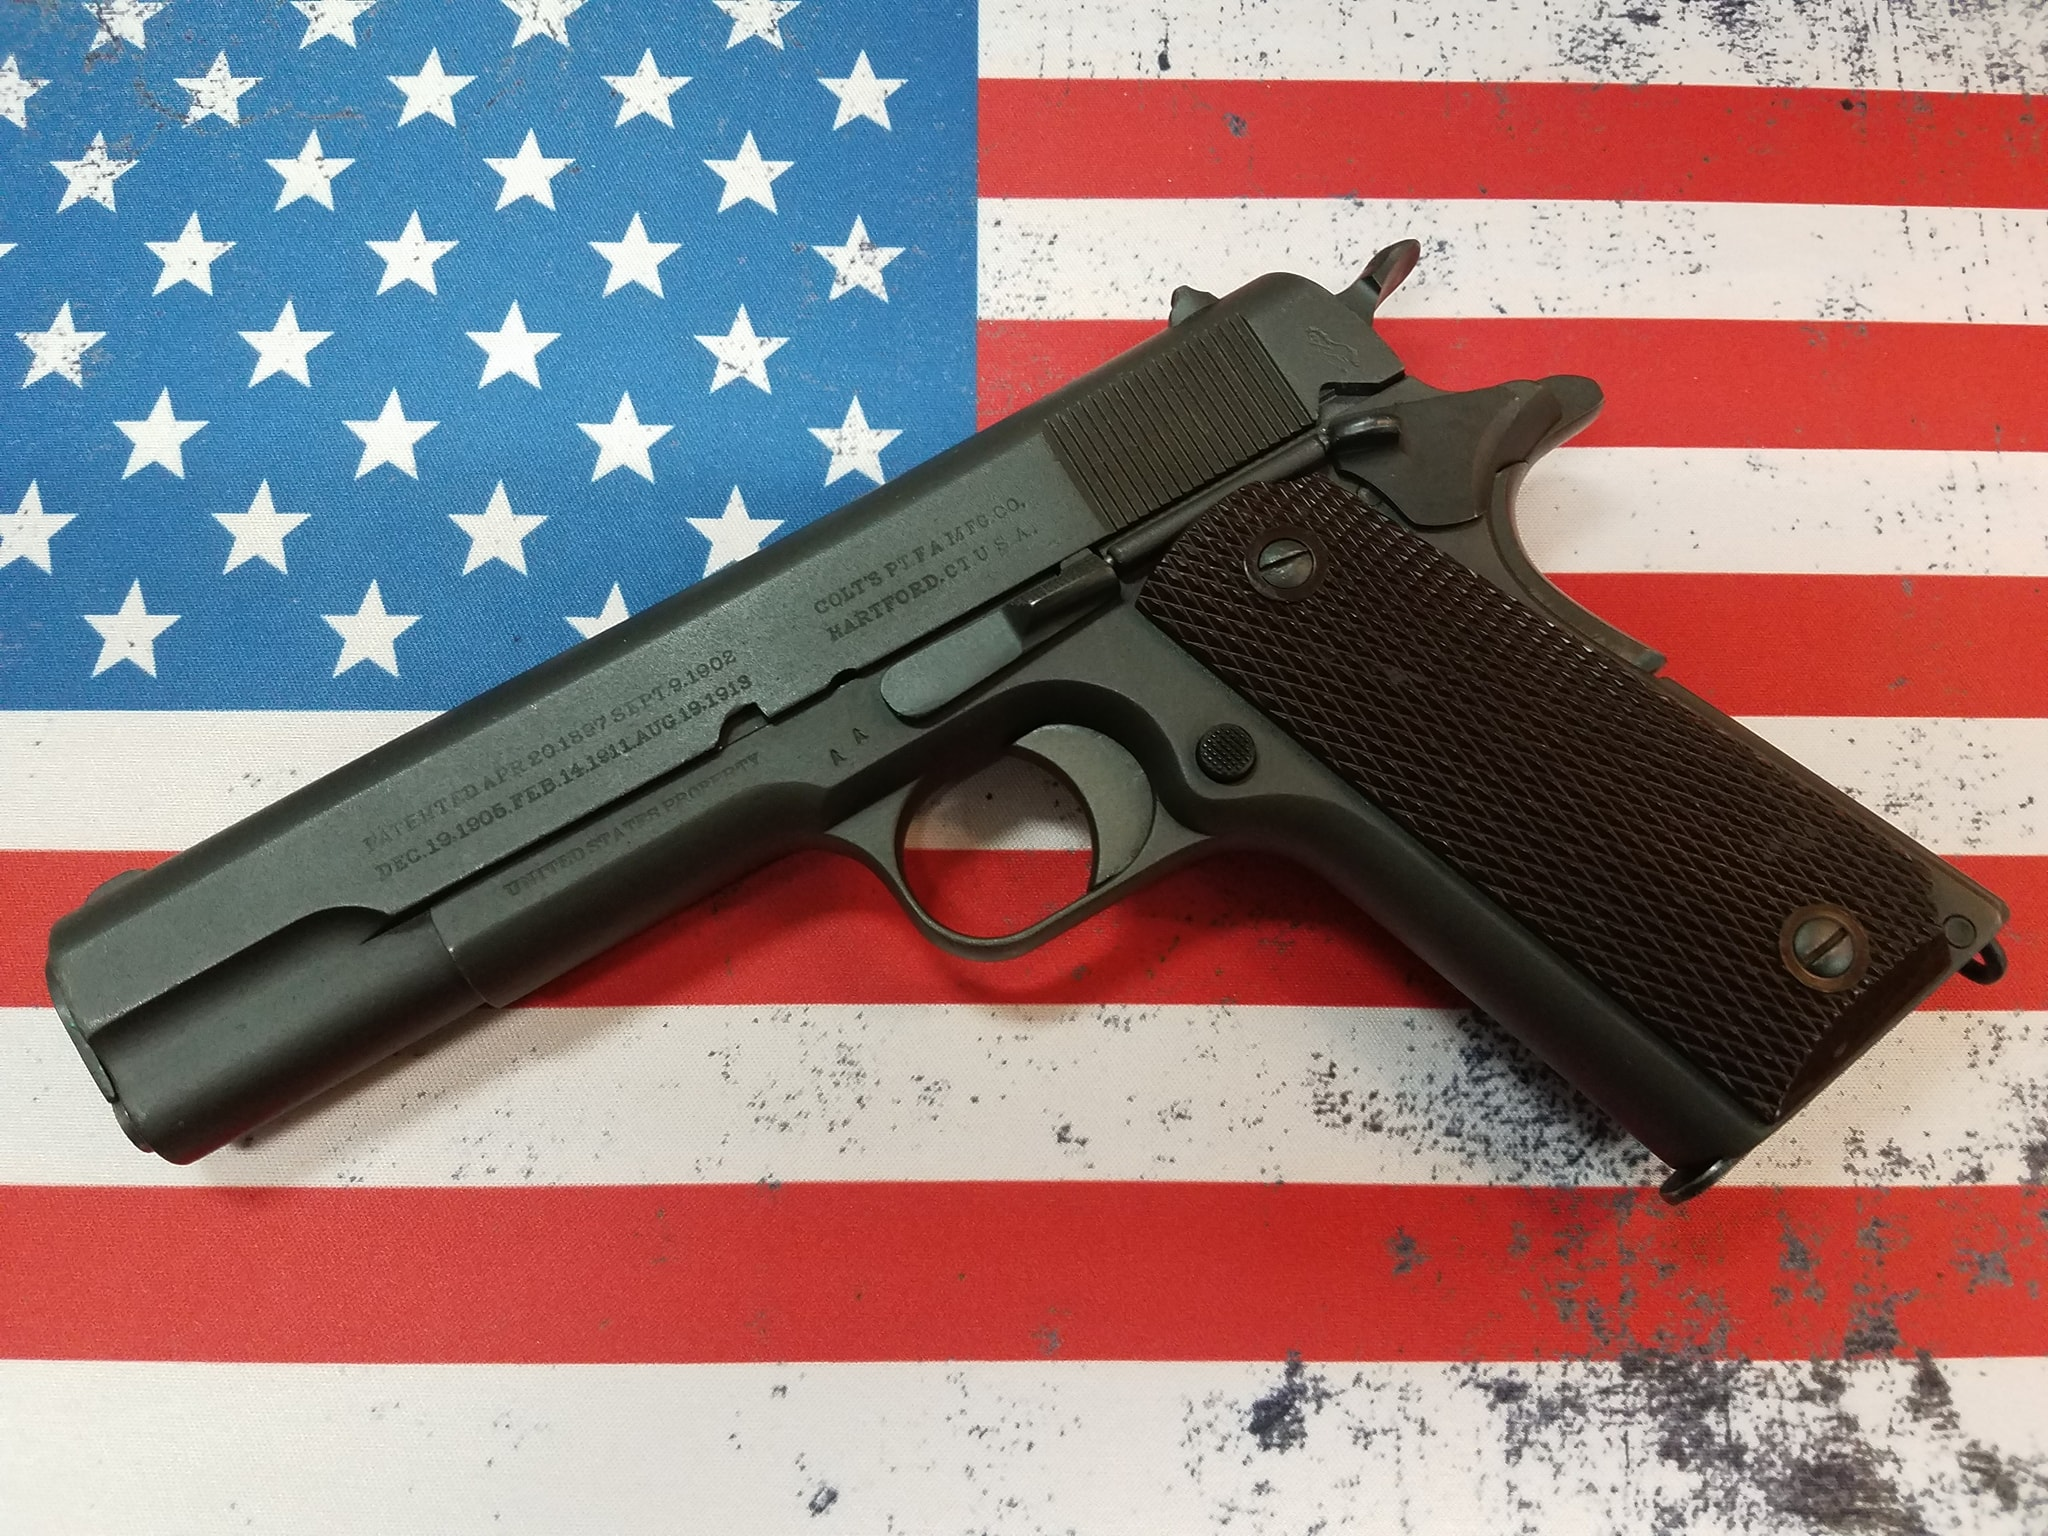 wwi Colt 1911 refurbished in wwii